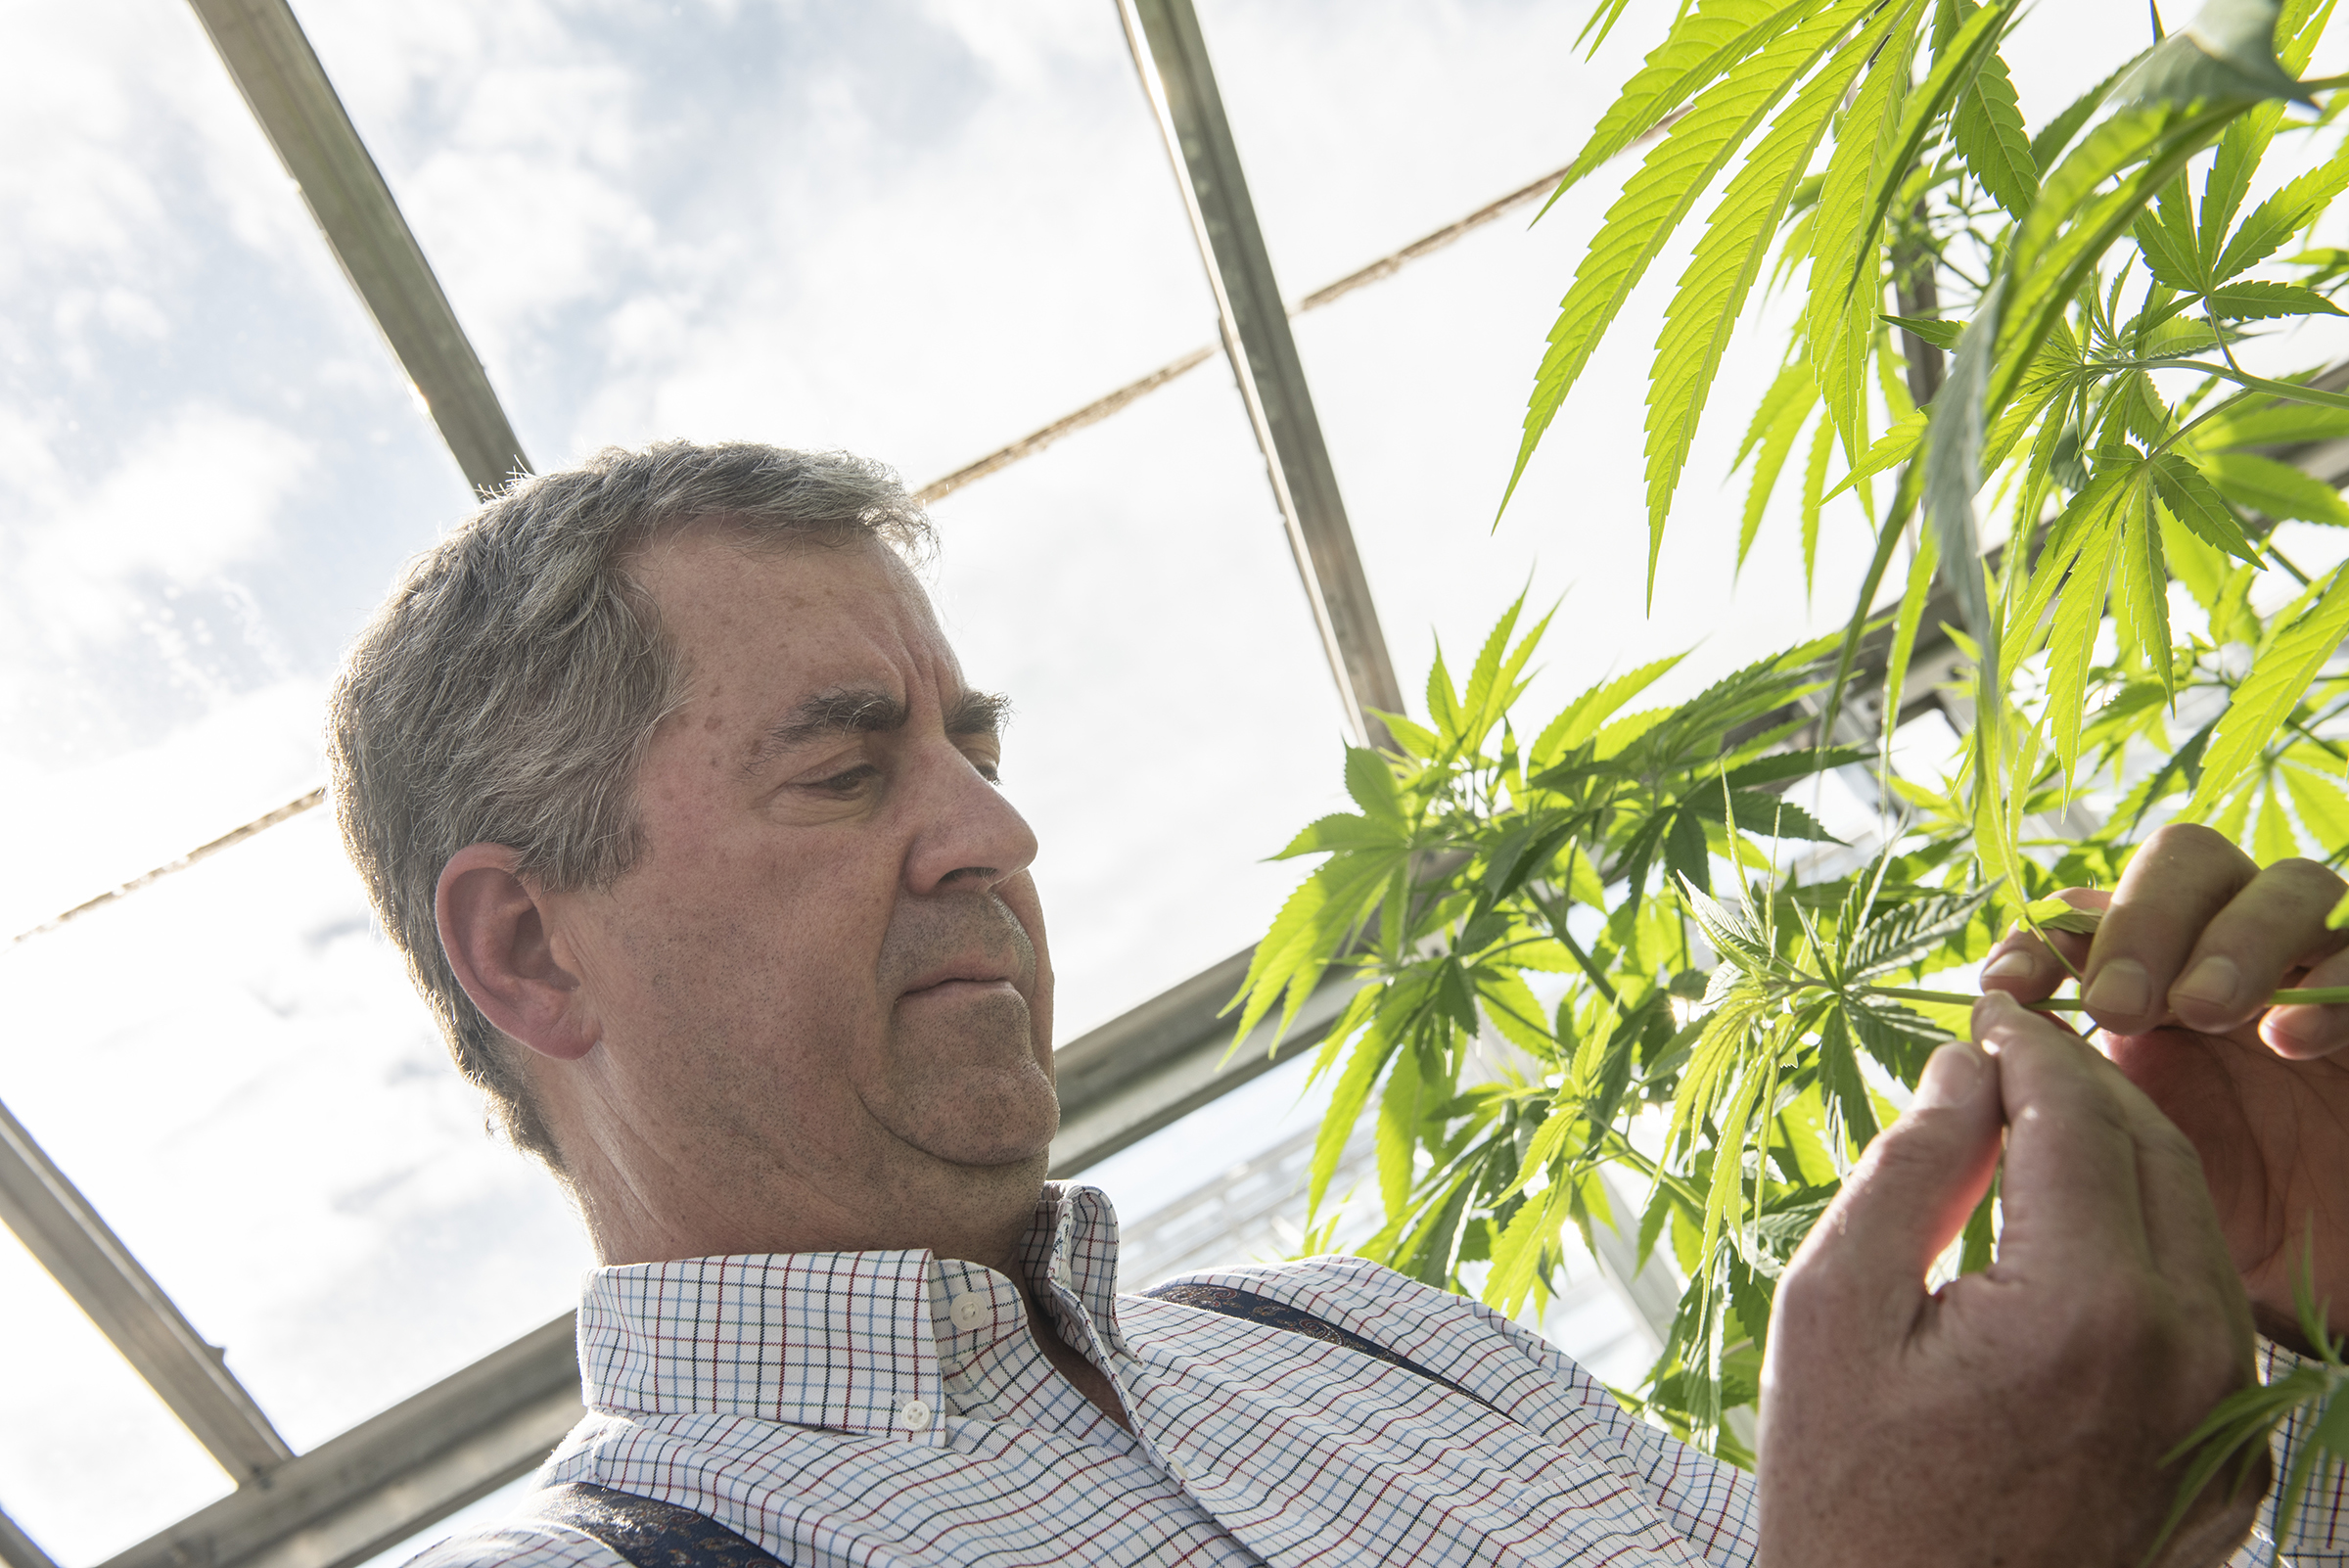 Photo: Stephen Ward, © Oregon State University Oregon State University hemp leader Jay Noller examines an industrial hemp plant.